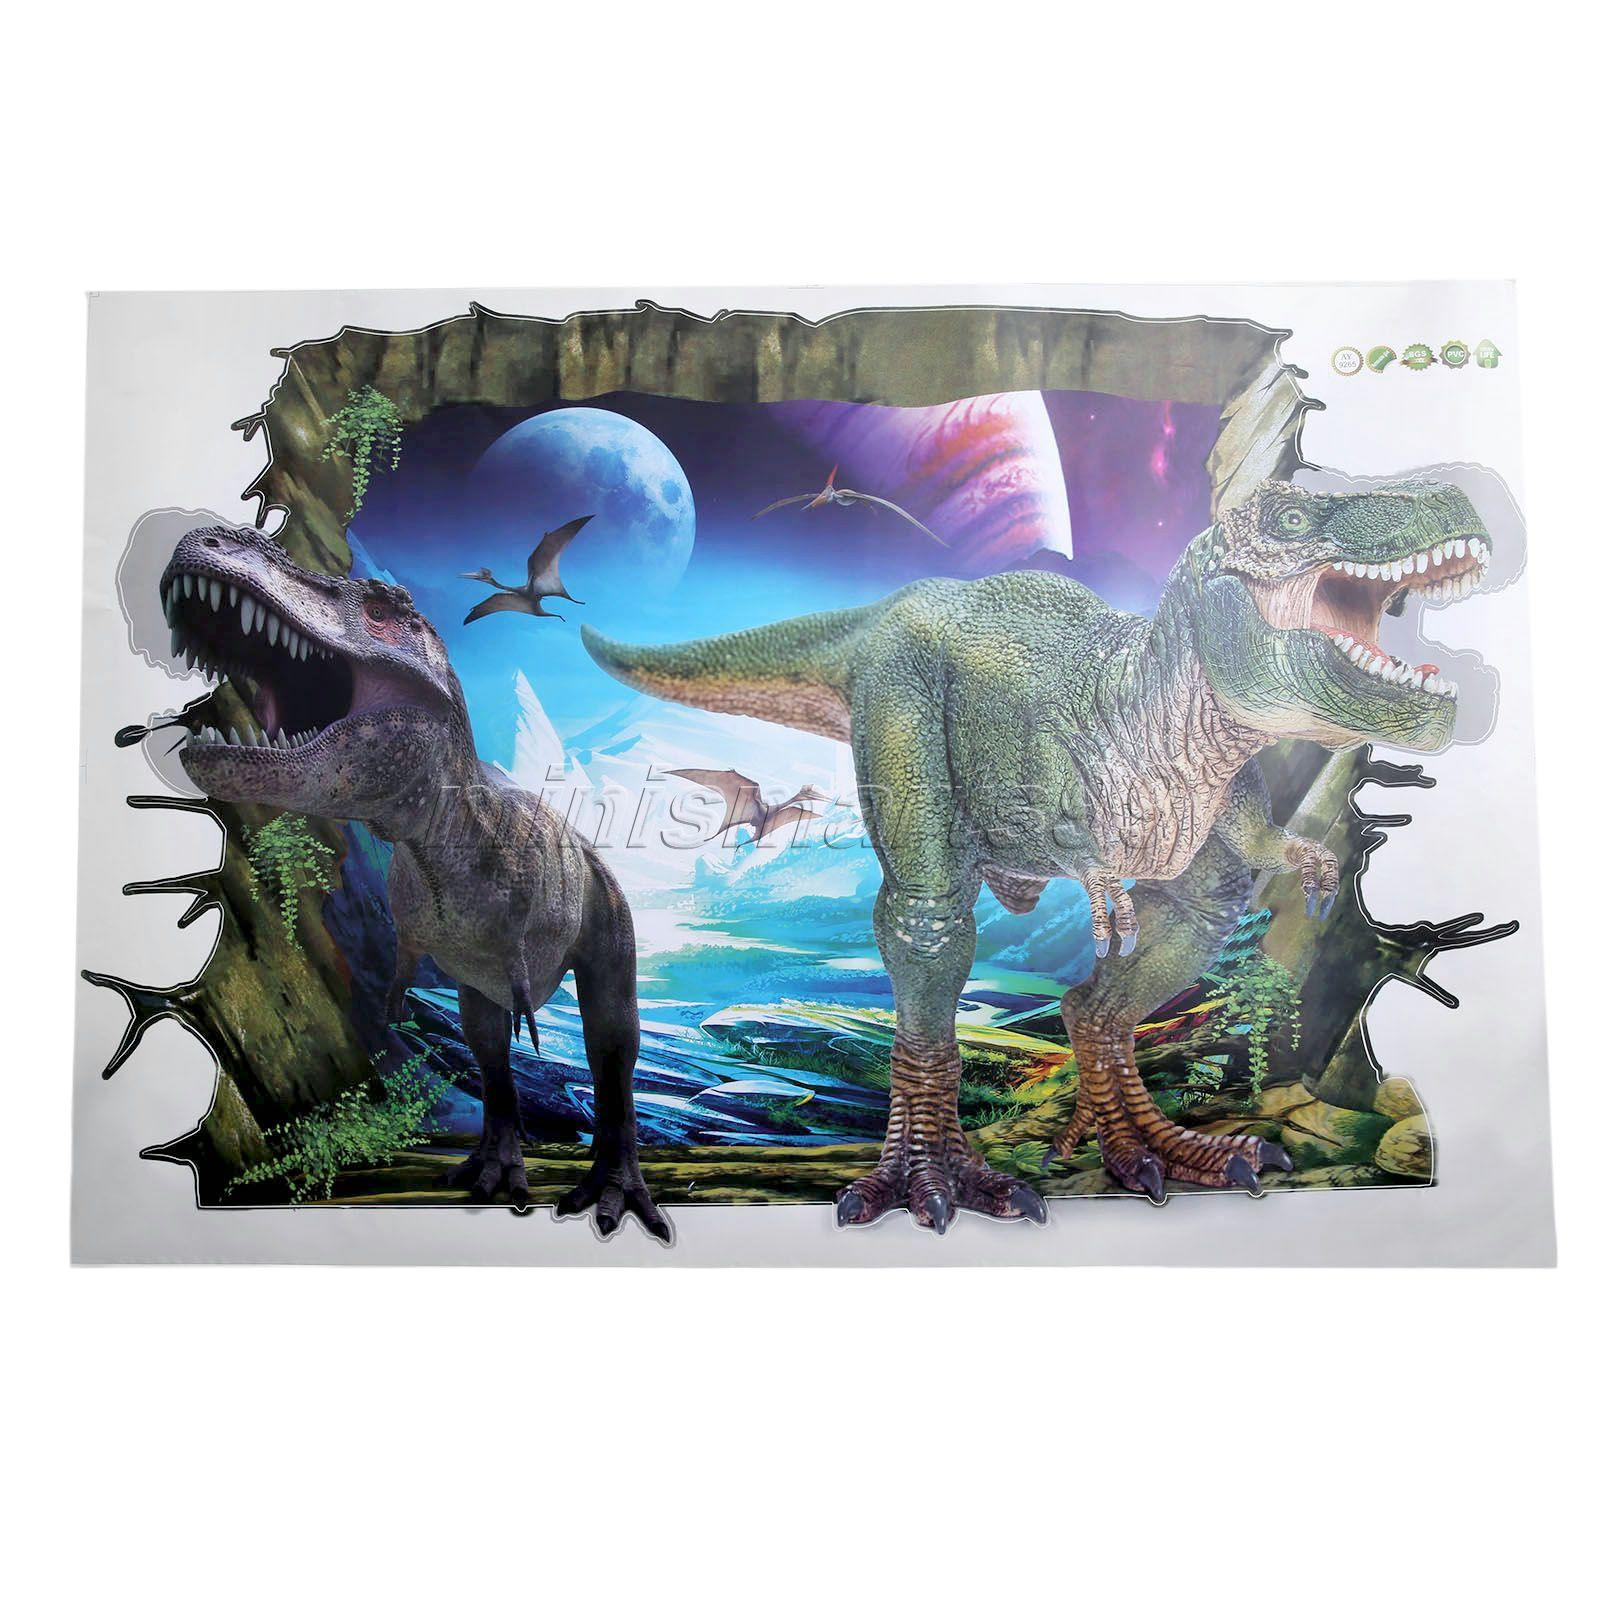 Wall Stickers for Kids Rooms of Movie Decals Jurassic Park Dinosaur Cartoon Wall Decoration Arts Wallpaper Home Decor